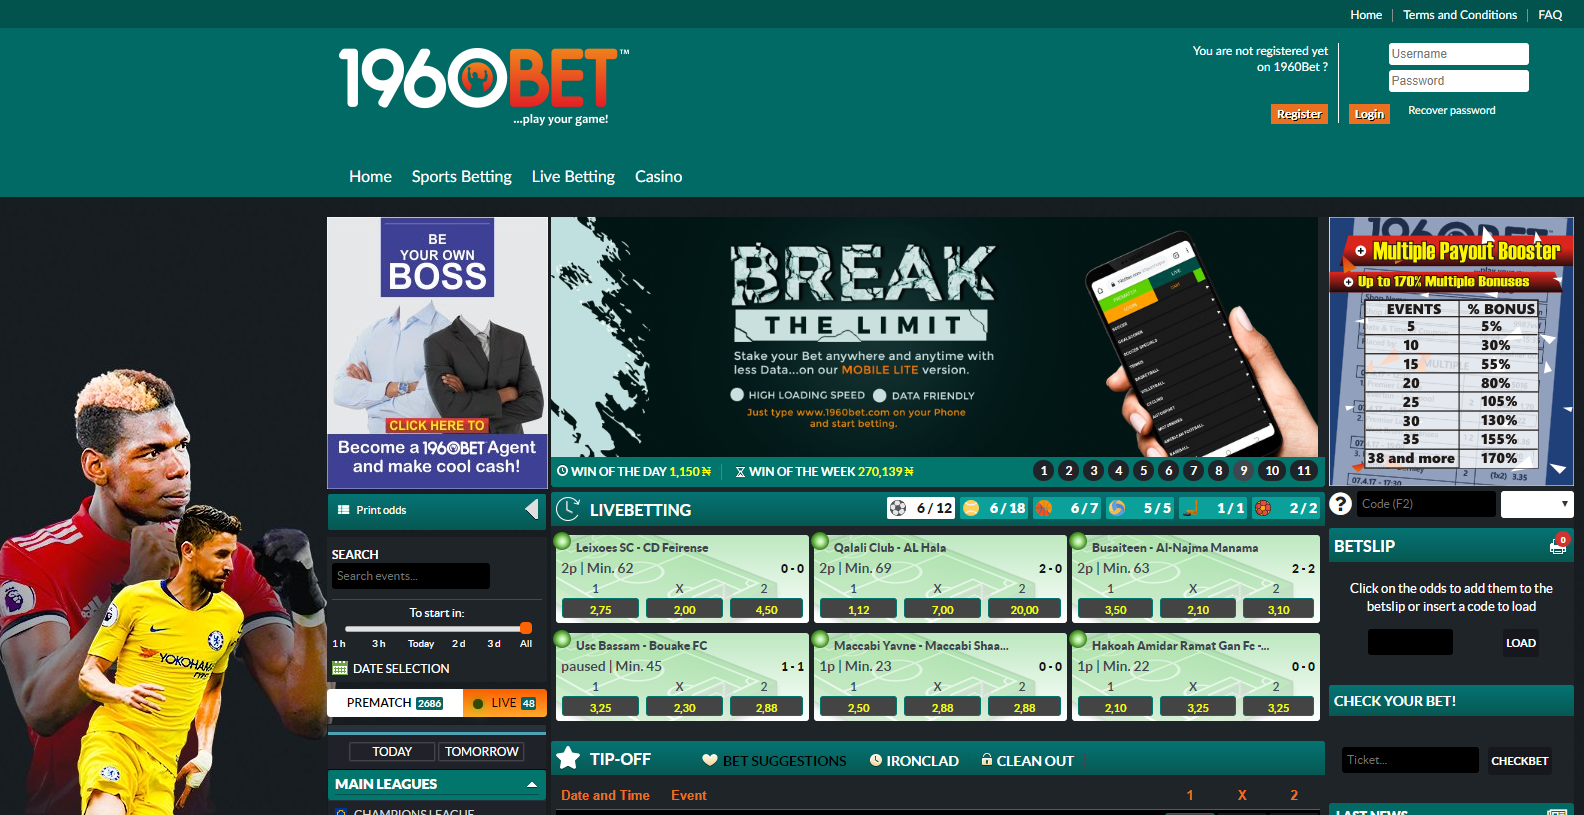 1960bet Nigeria Sports Betting Review July 2021